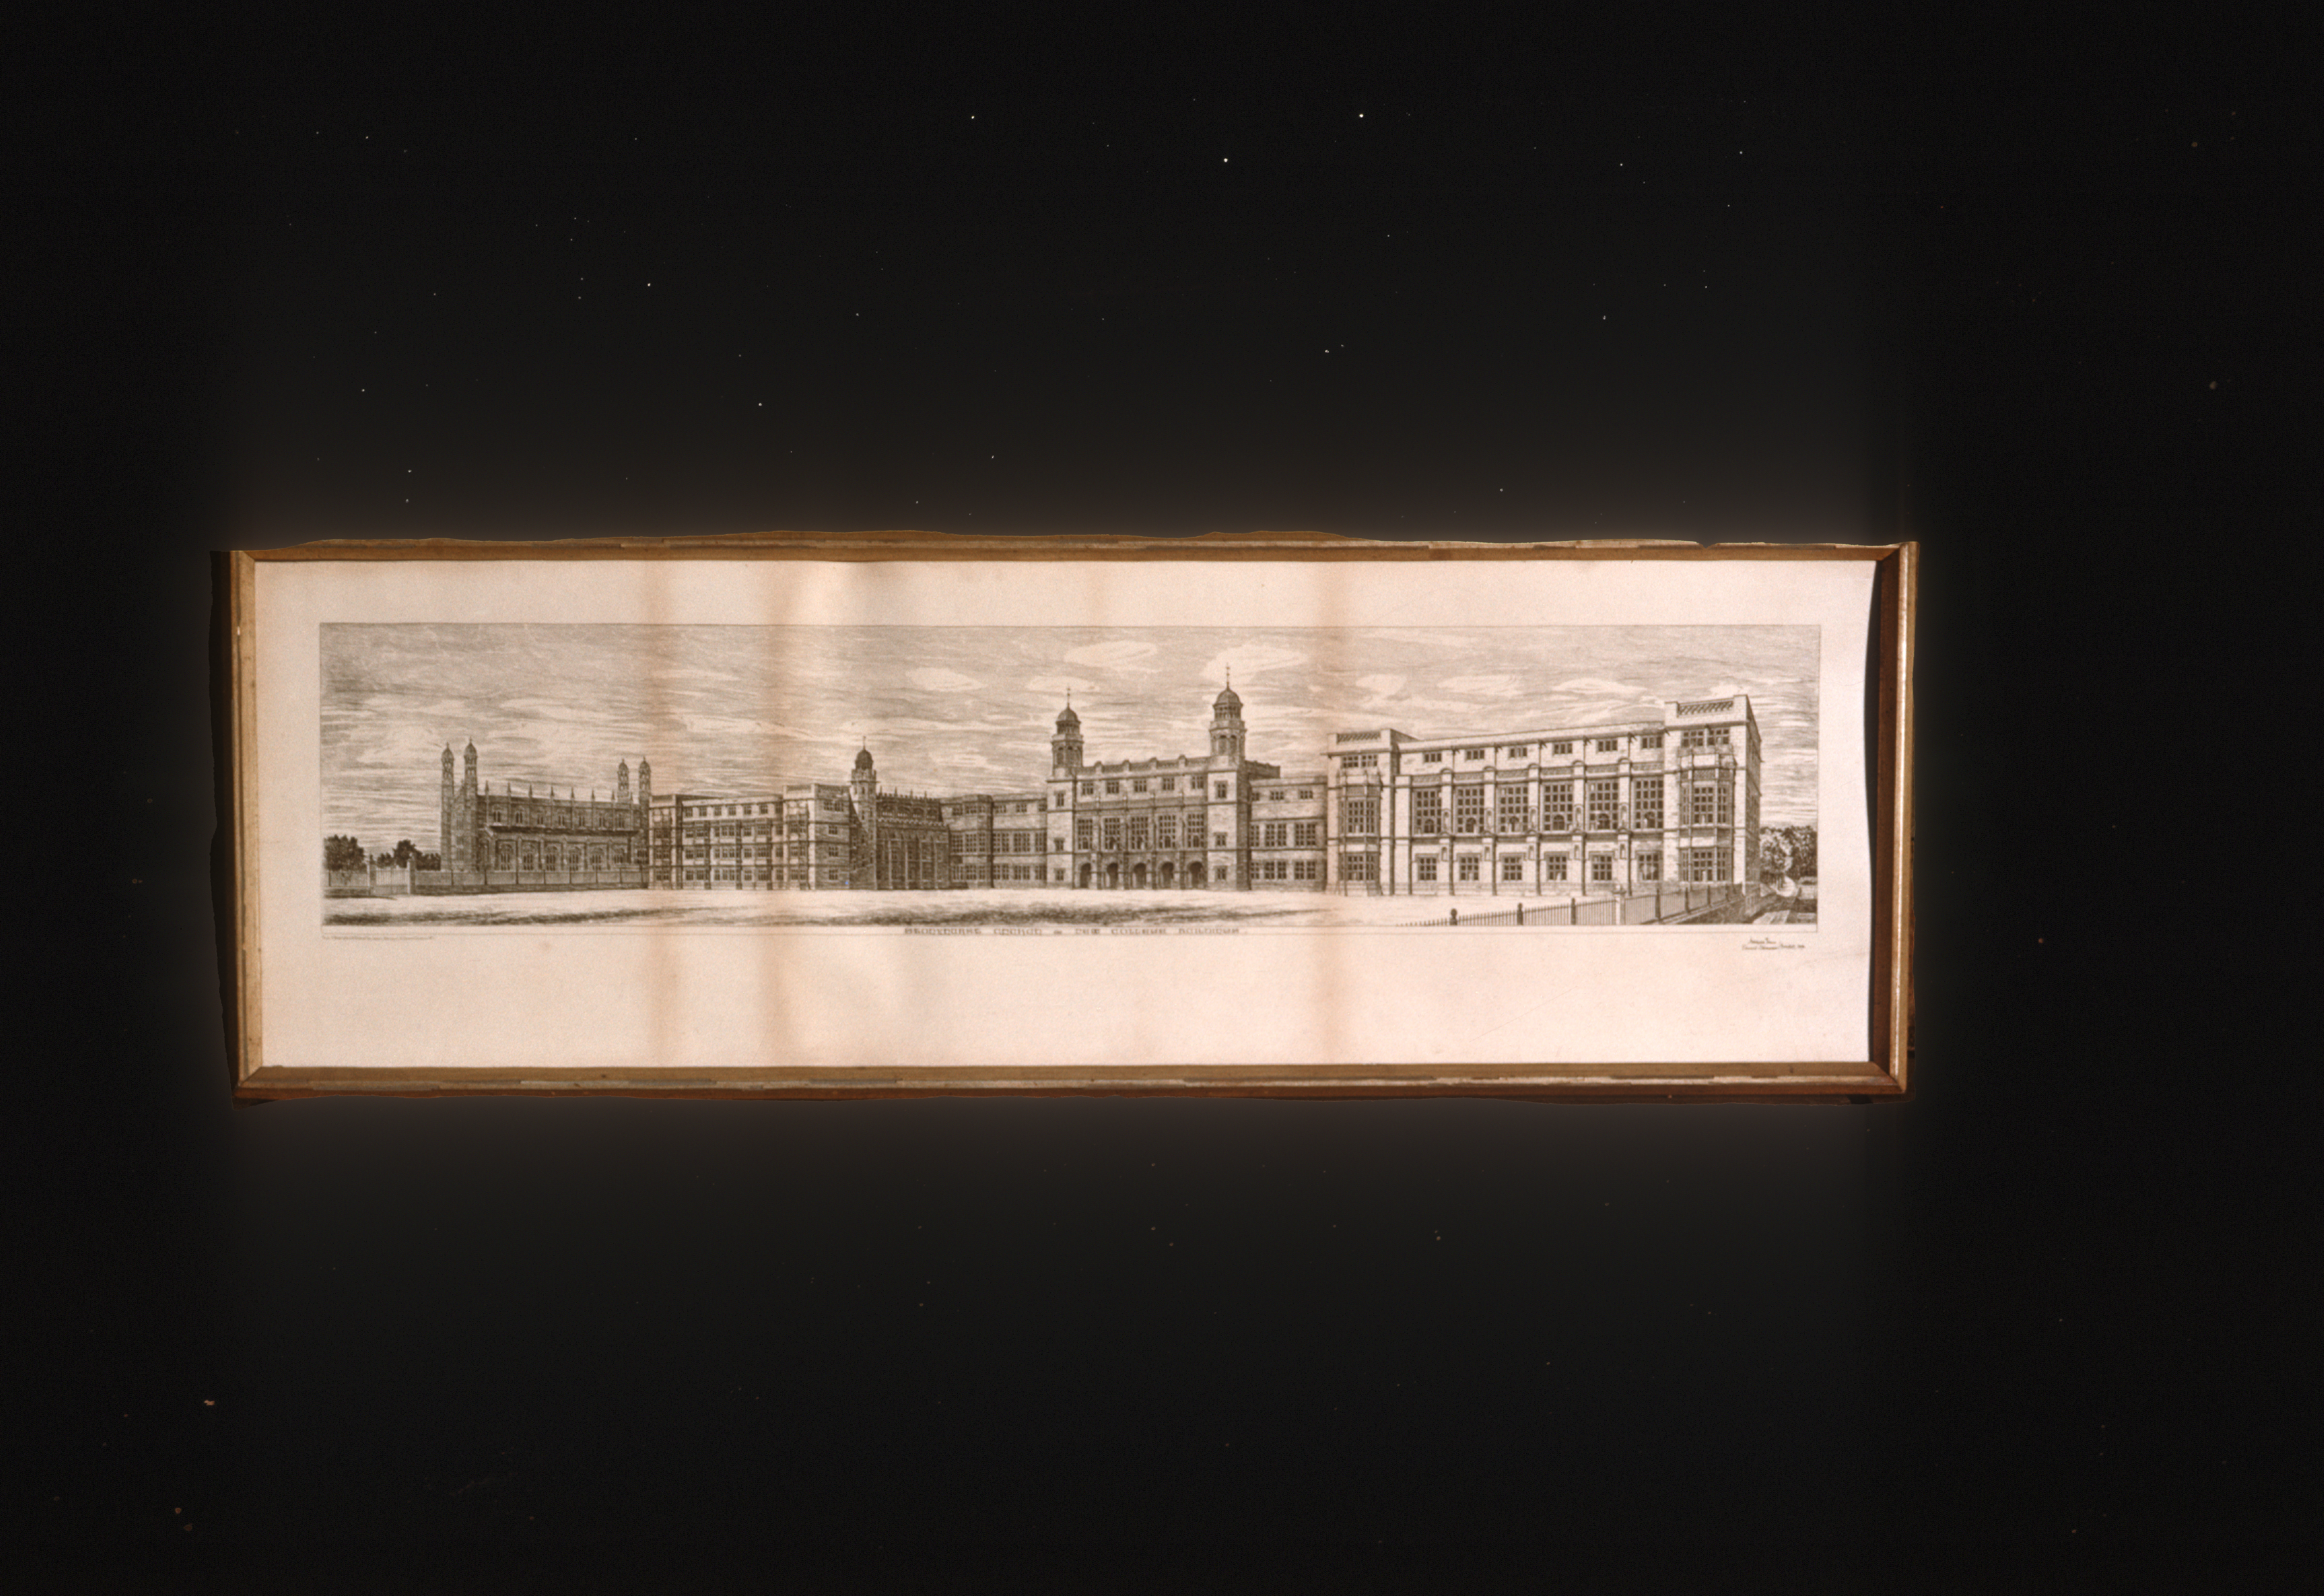 photograph of a framed drawing of the front side of Stonyhurt buildings from 1878